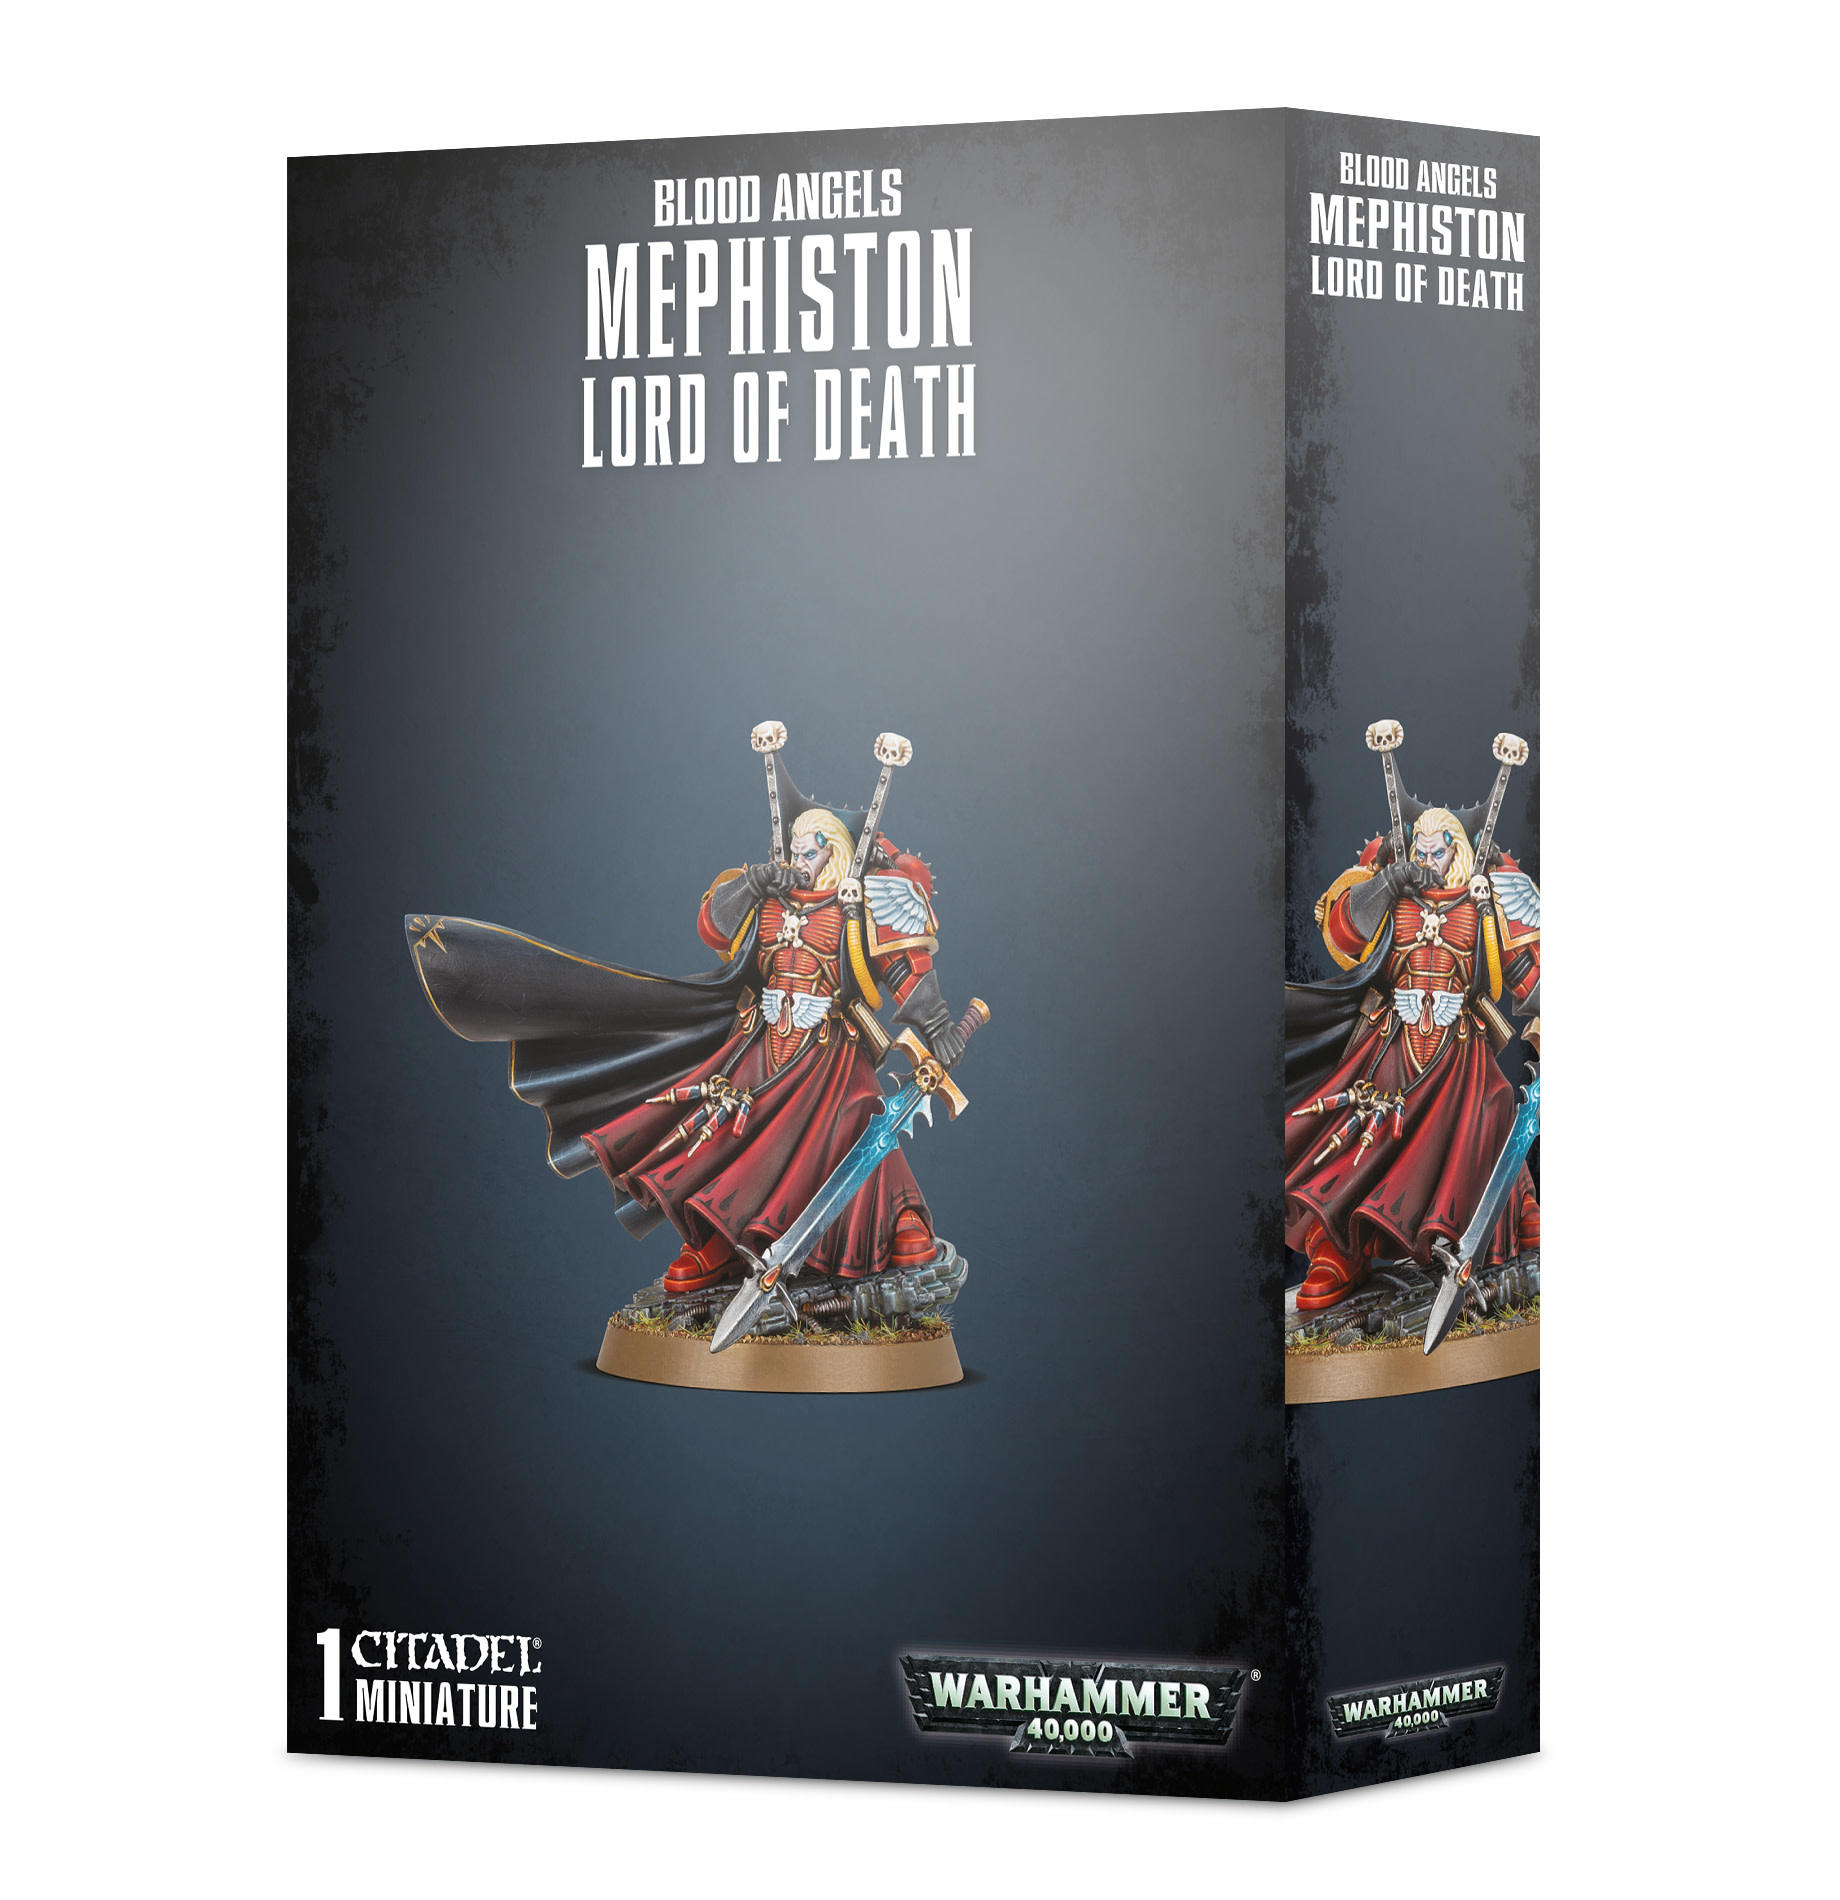 Warhammer 40k BLOOD ANGELS MEPHISTON - LORD OF DEATH